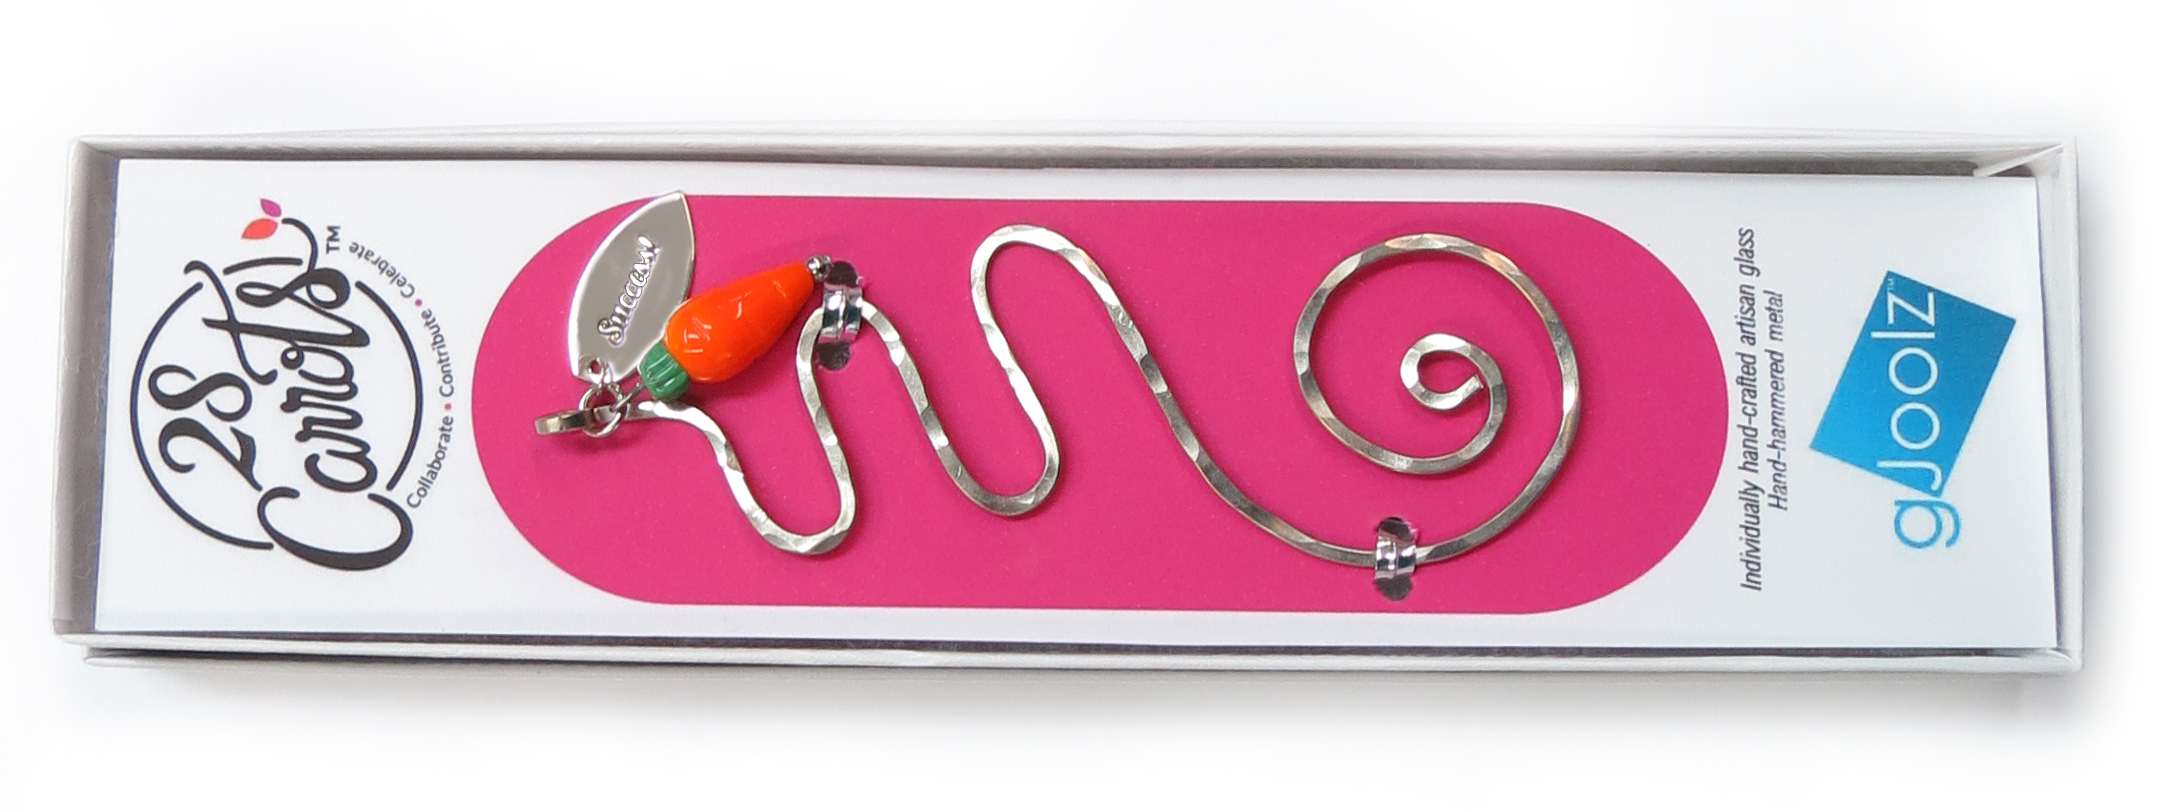 28c-bookmark-with-edges-white-and-cropped-horiz.jpg